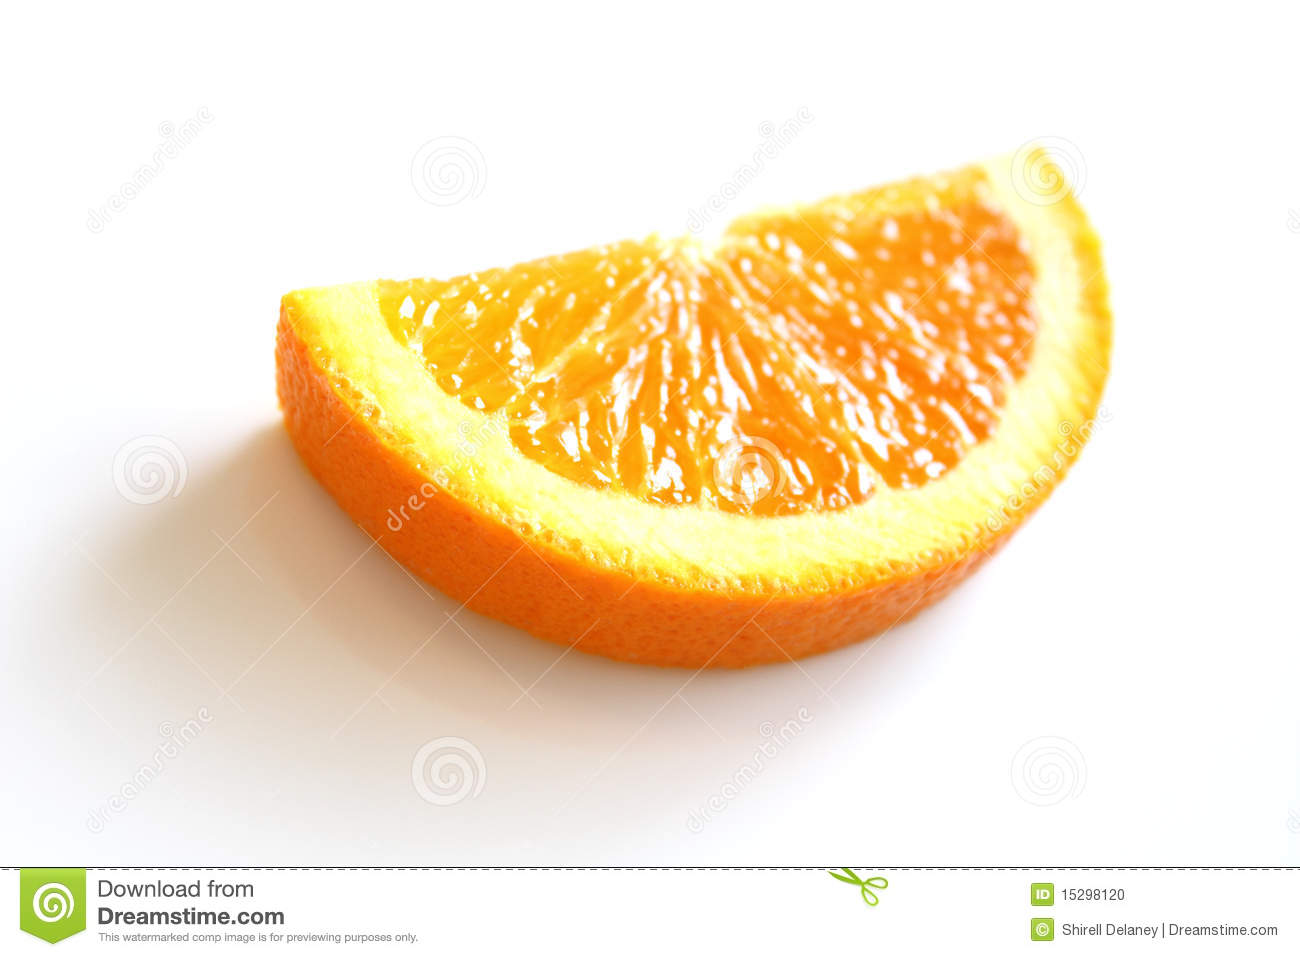 how to draw half an orange